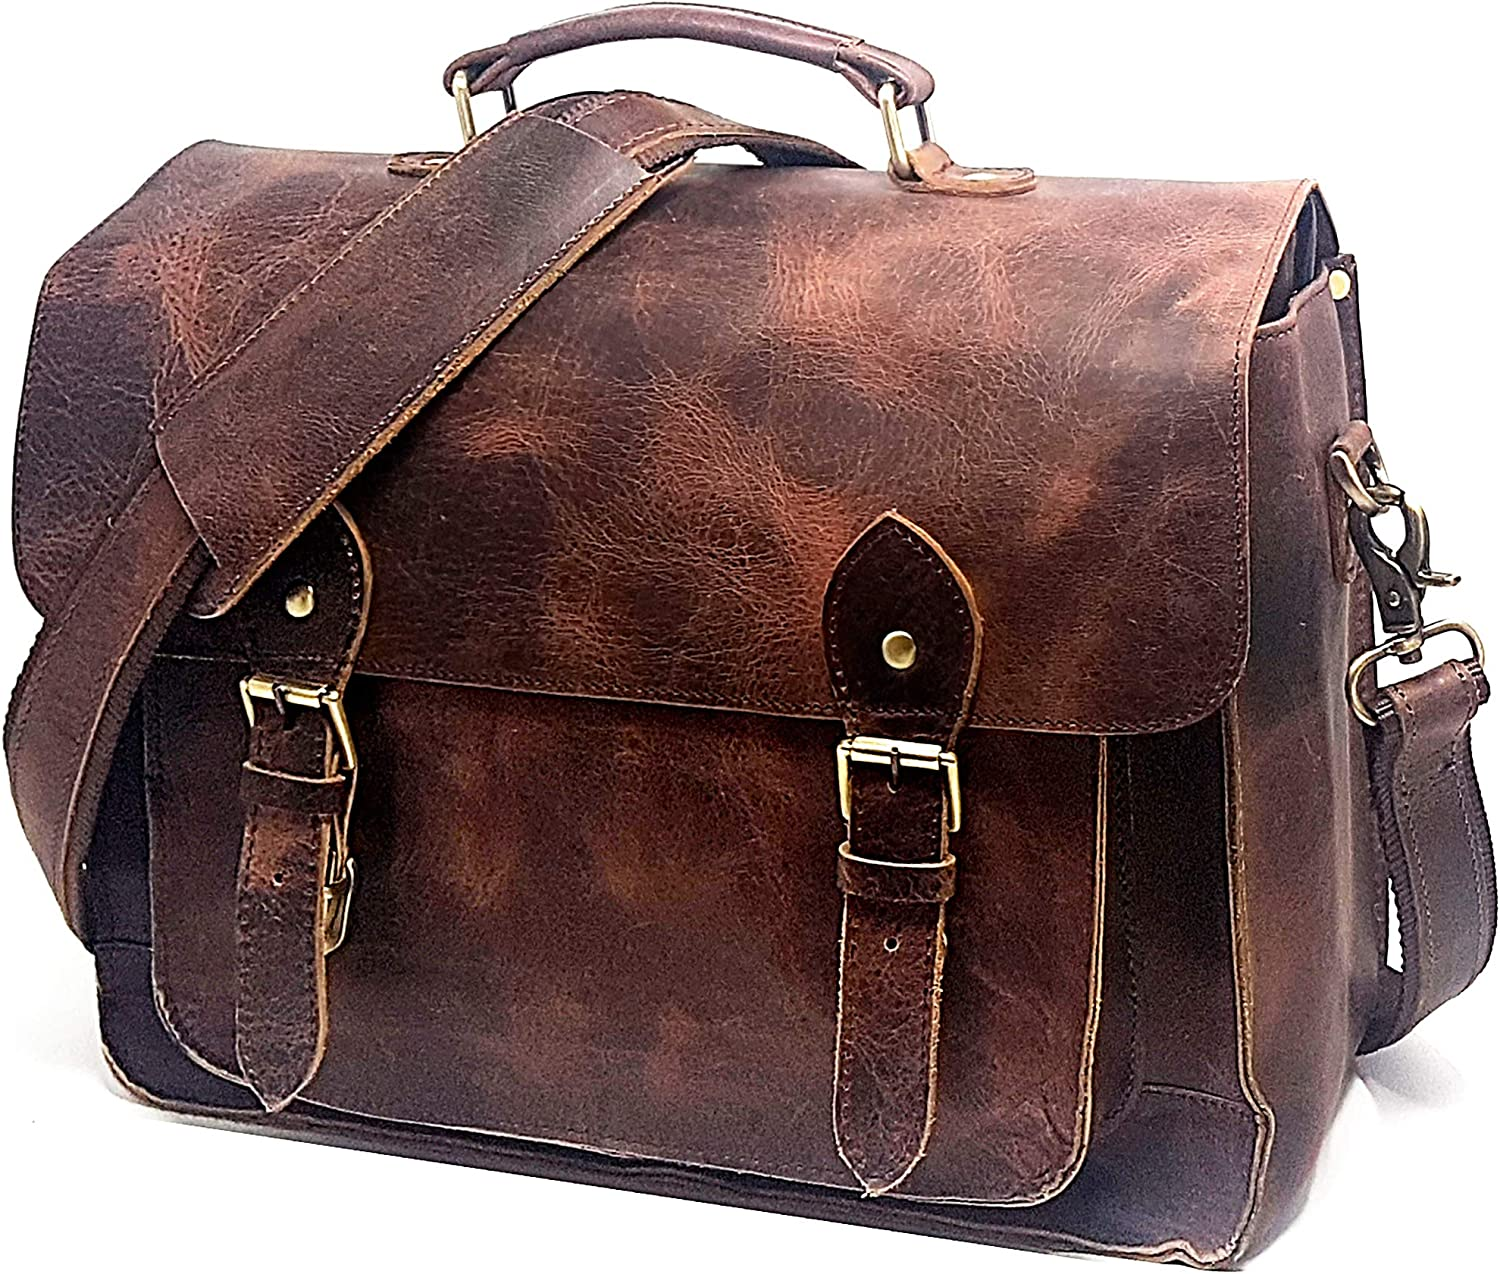 Full Grain Leather DSLR Camera Bag, Multipurpose Real Hunter Leather 15-Inch Briefcase, Shoulder Messenger Satchel Fits 15.6-Inch Laptop with Removable Insert